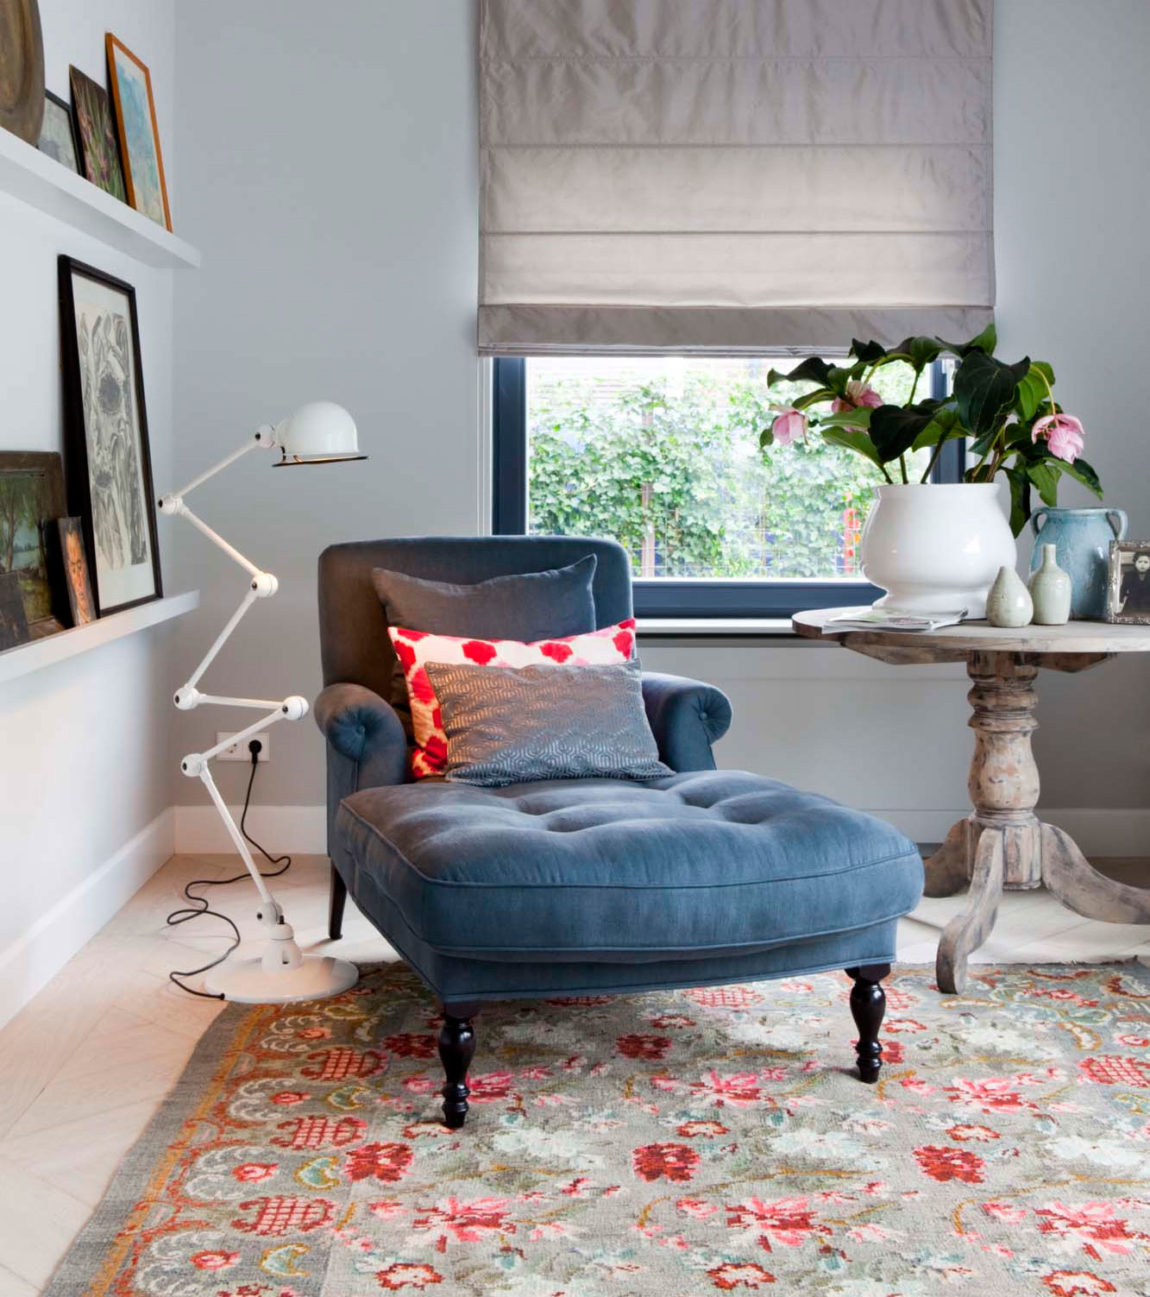 Amsterdam Residential Home by Sies Home Interior Design (11)